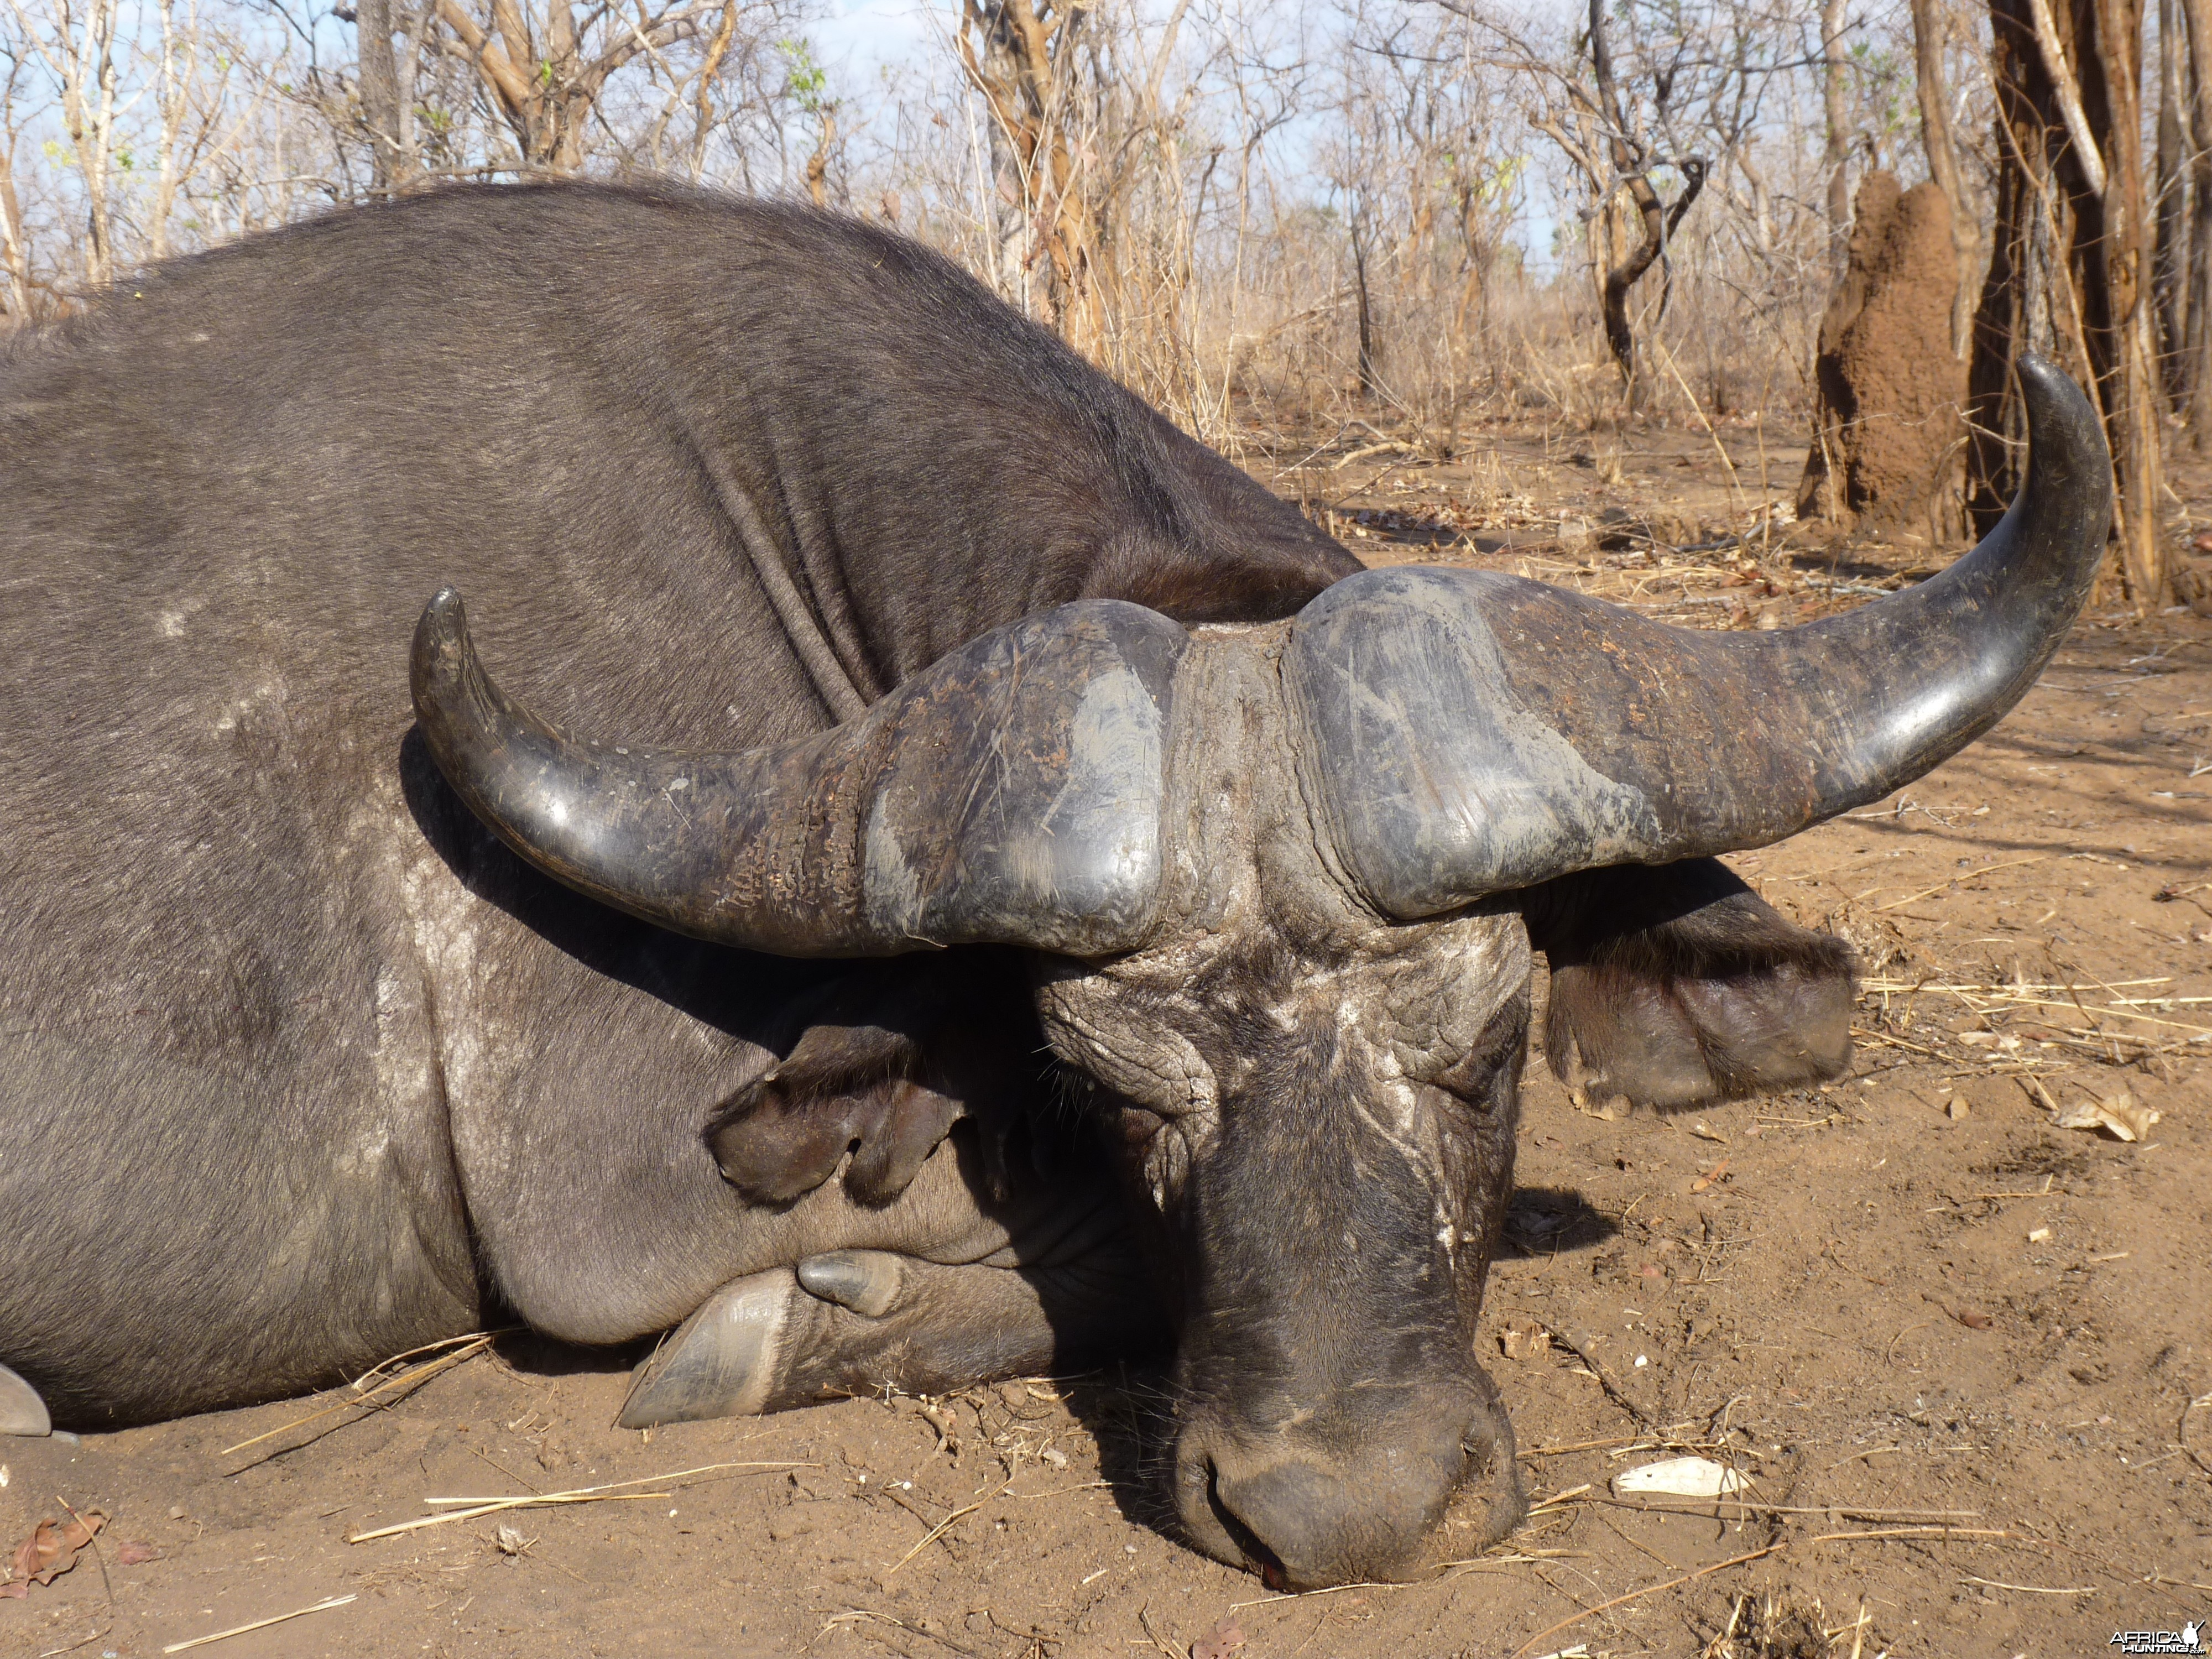 Cape buffalo hunt Tanzania